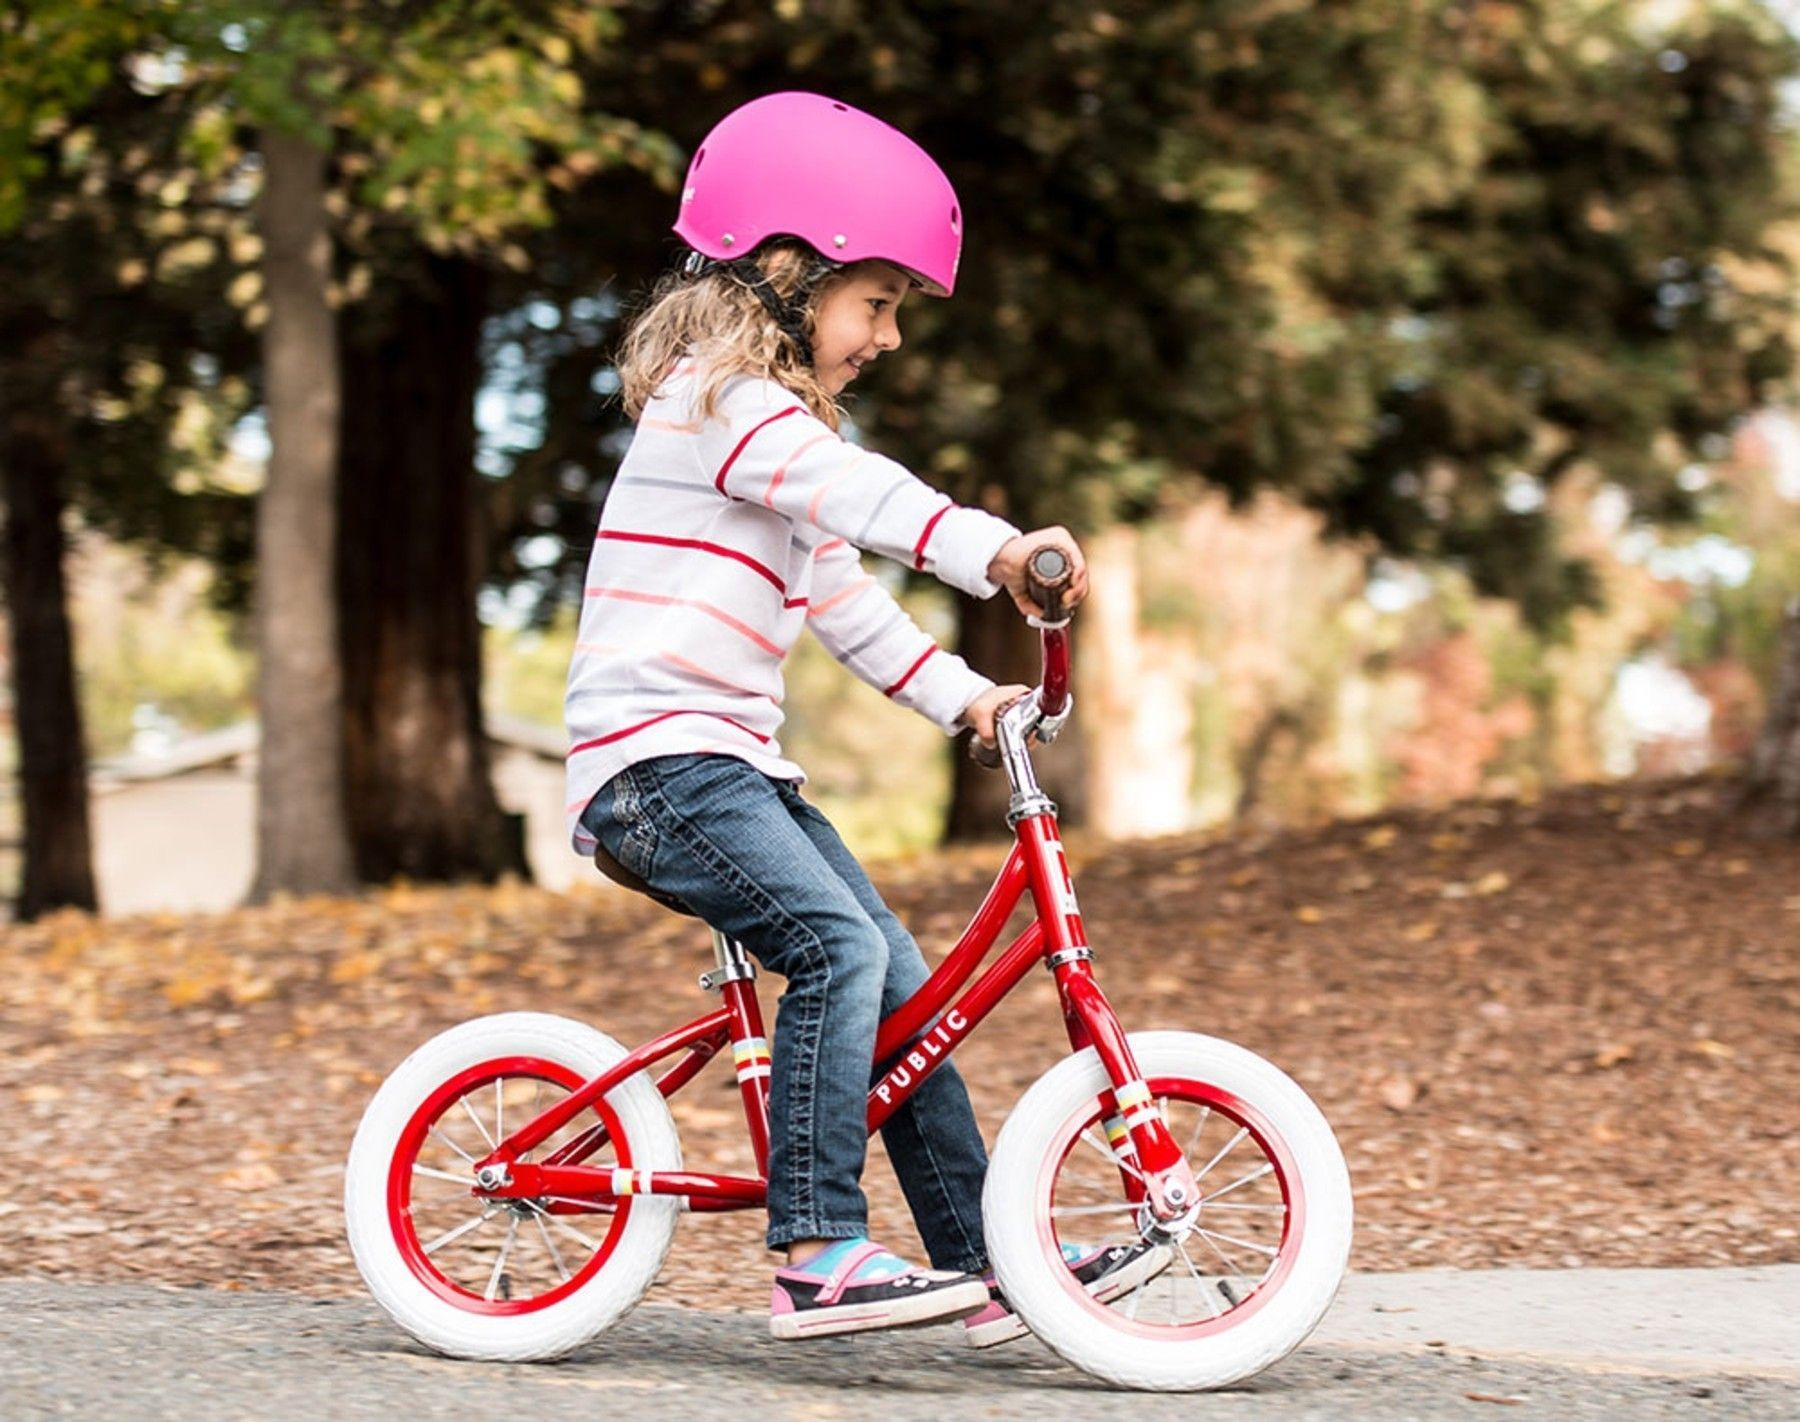 RideOnToys' Complete Kids' Balance Bike Guide